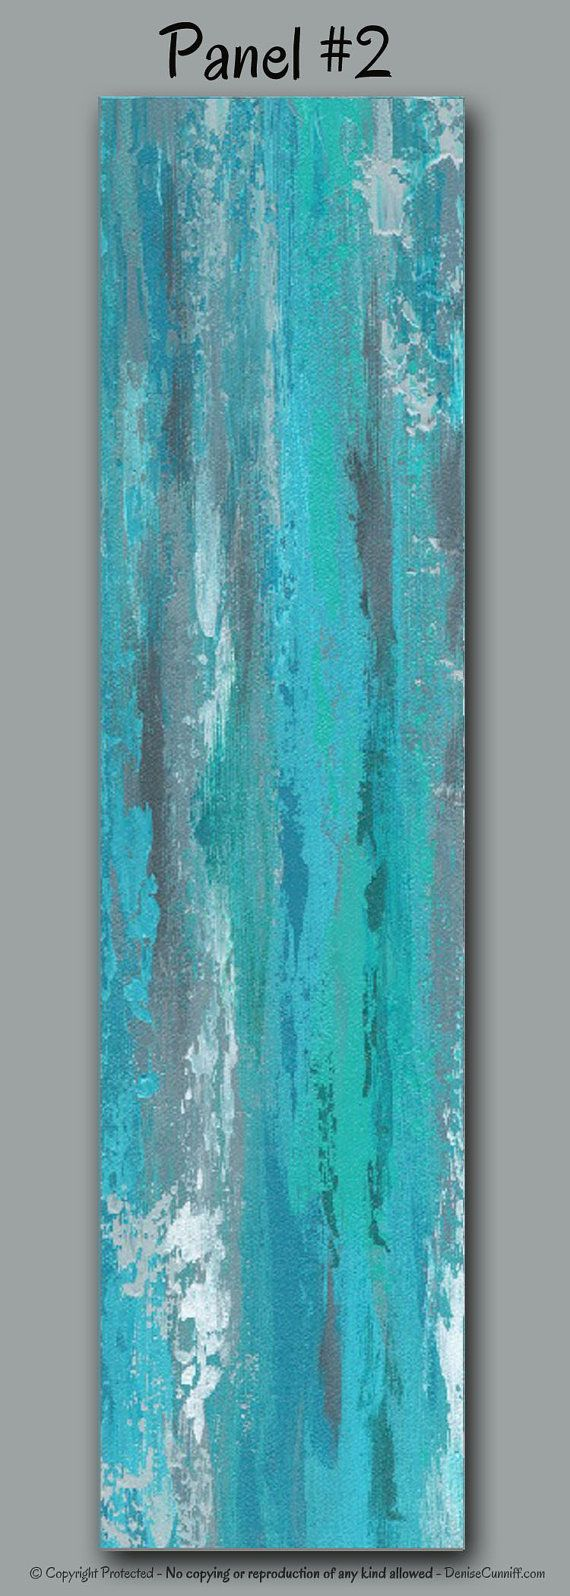 Large abstract wall art for gray teal and turquoise home or office